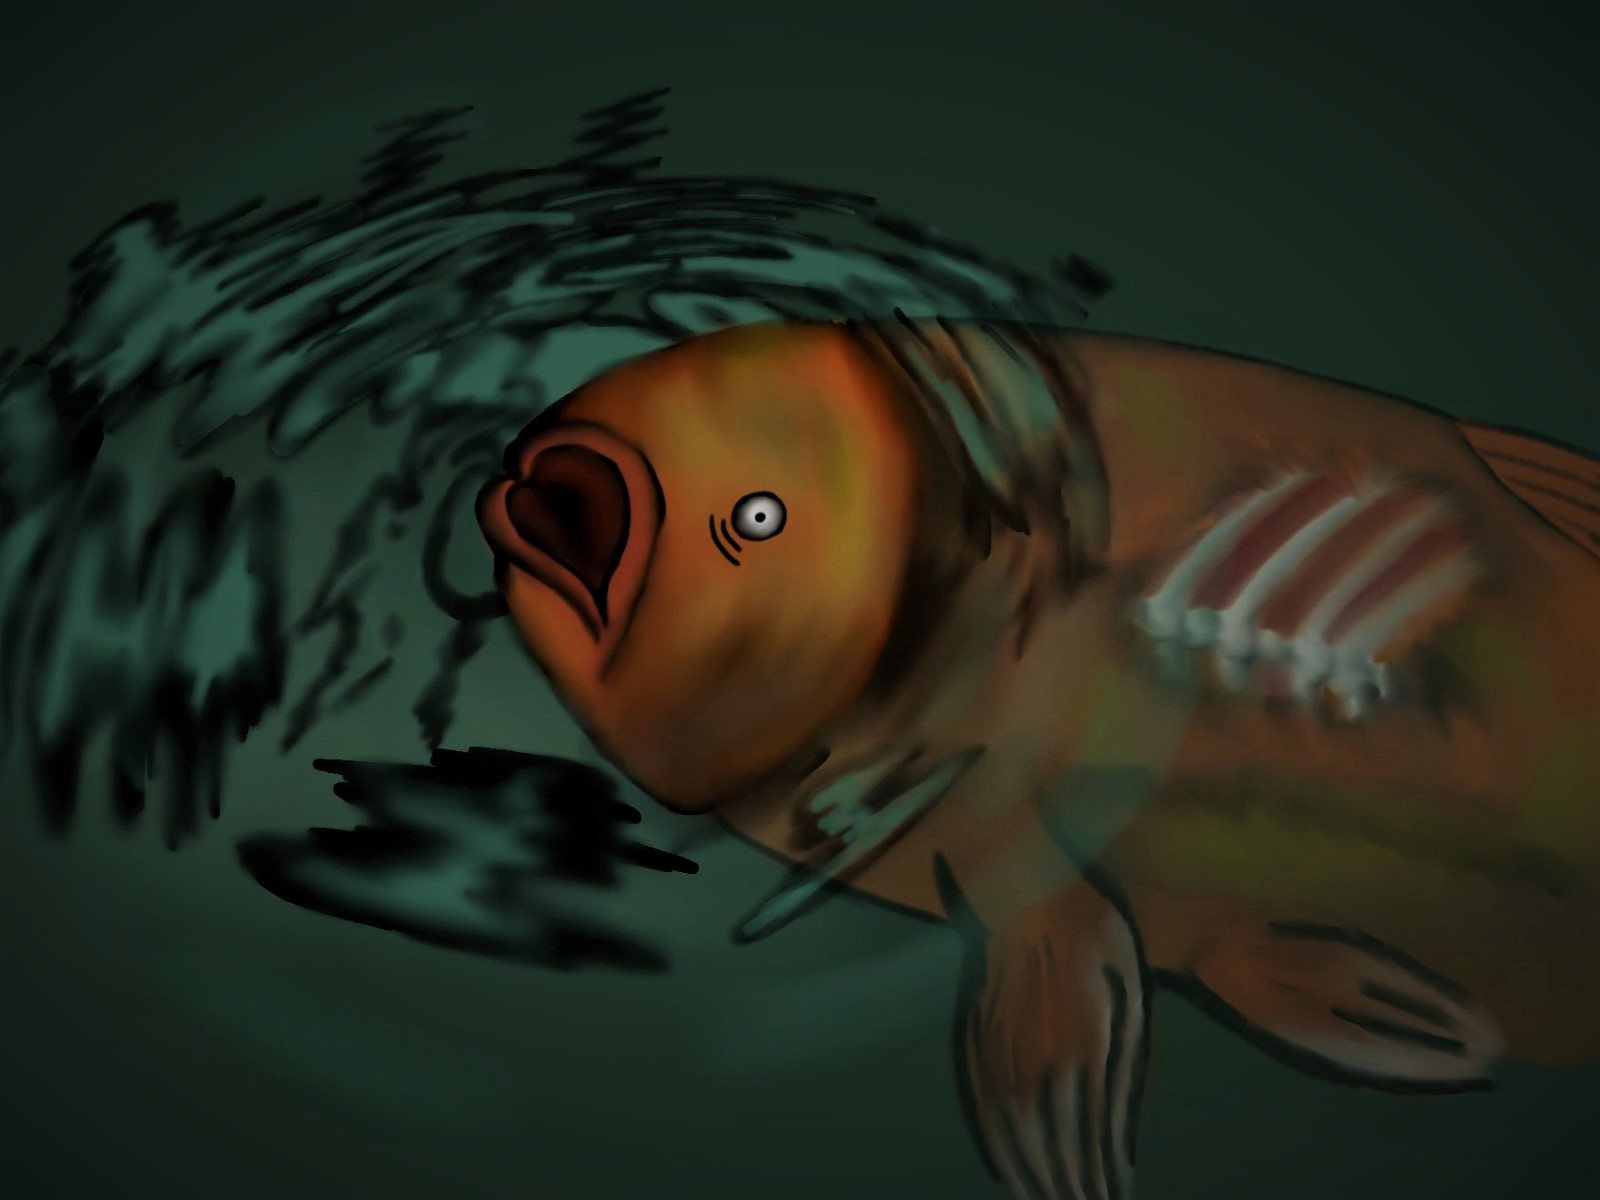 A sick fish gasping for air in dirty water.